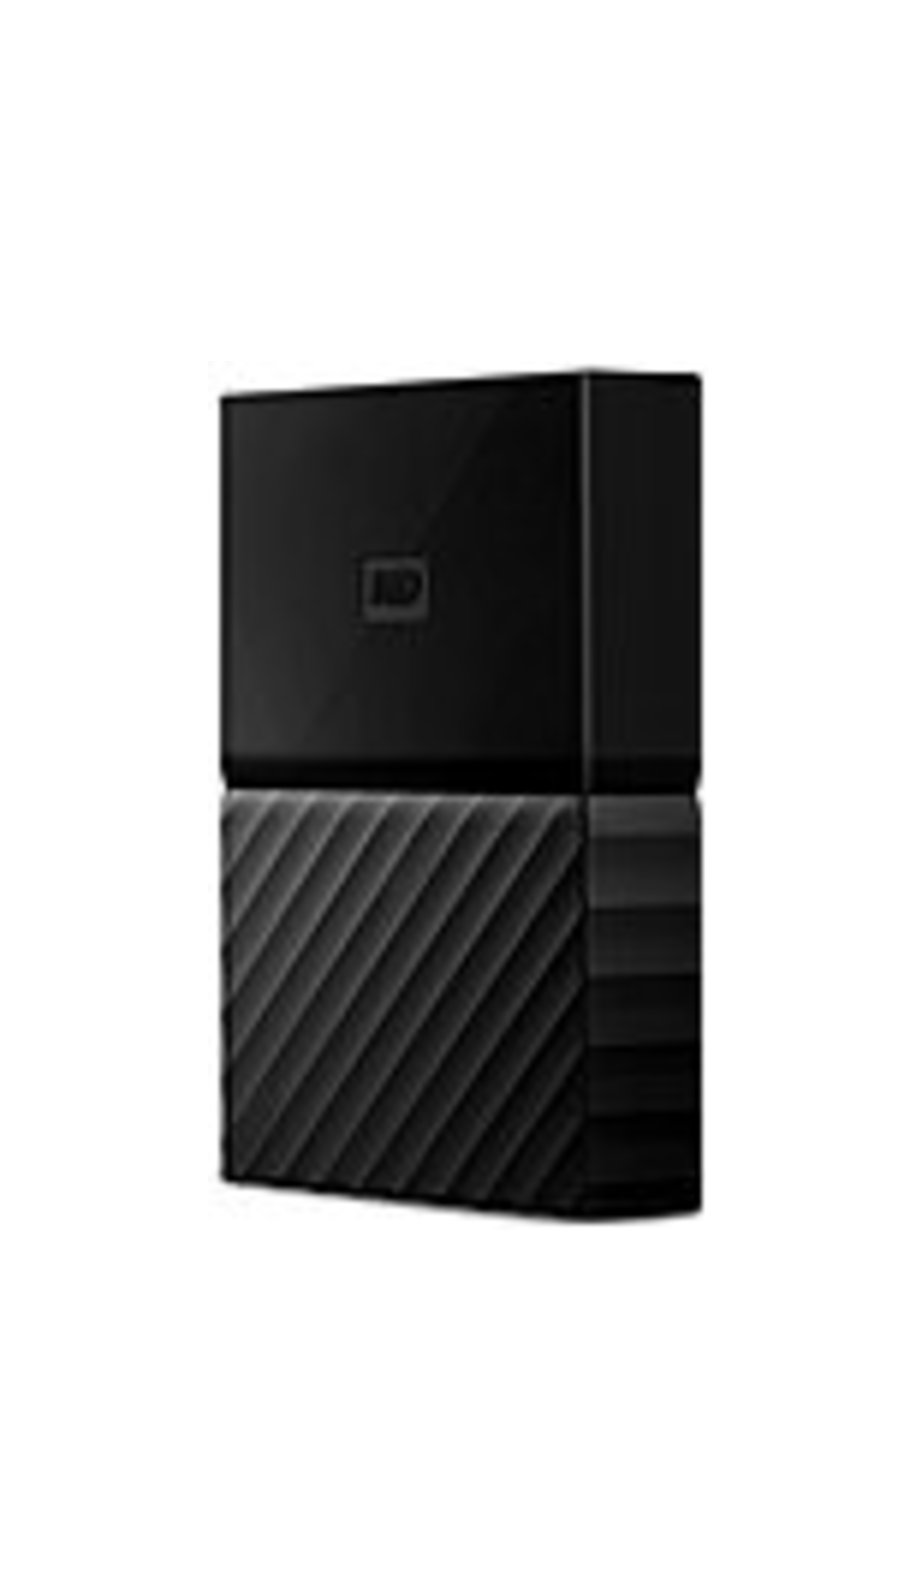 Western Digital WDBYFT0020BBK-WESN 2 TB My Passport Portable External Hard Disk Drive - USB 3.0 - Black